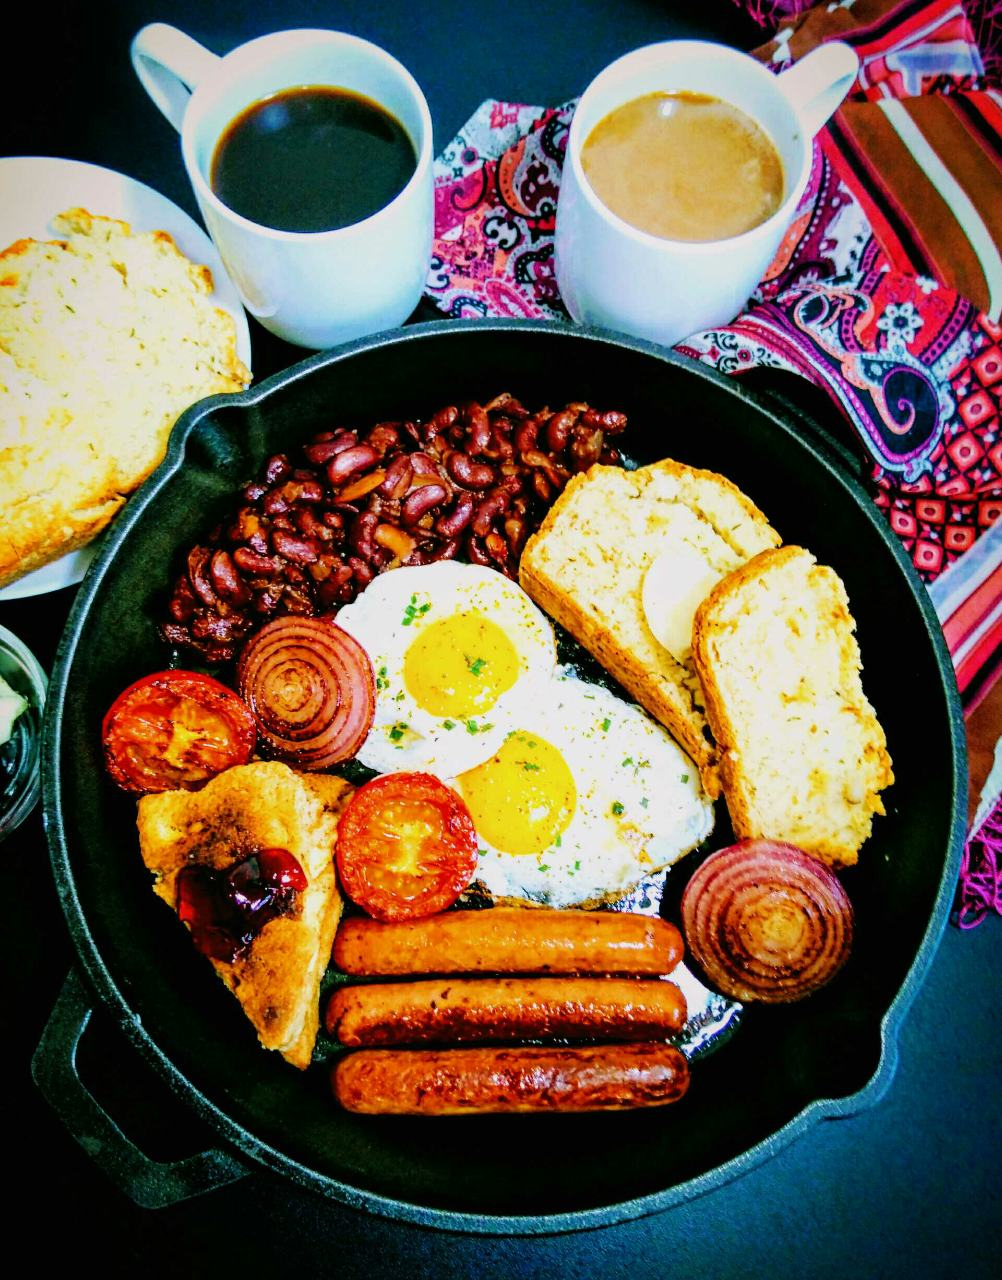 Full English Breakfast With Eggs, Sausages, Beans, Soda Bread, Scones, And Grilled Tomatoes